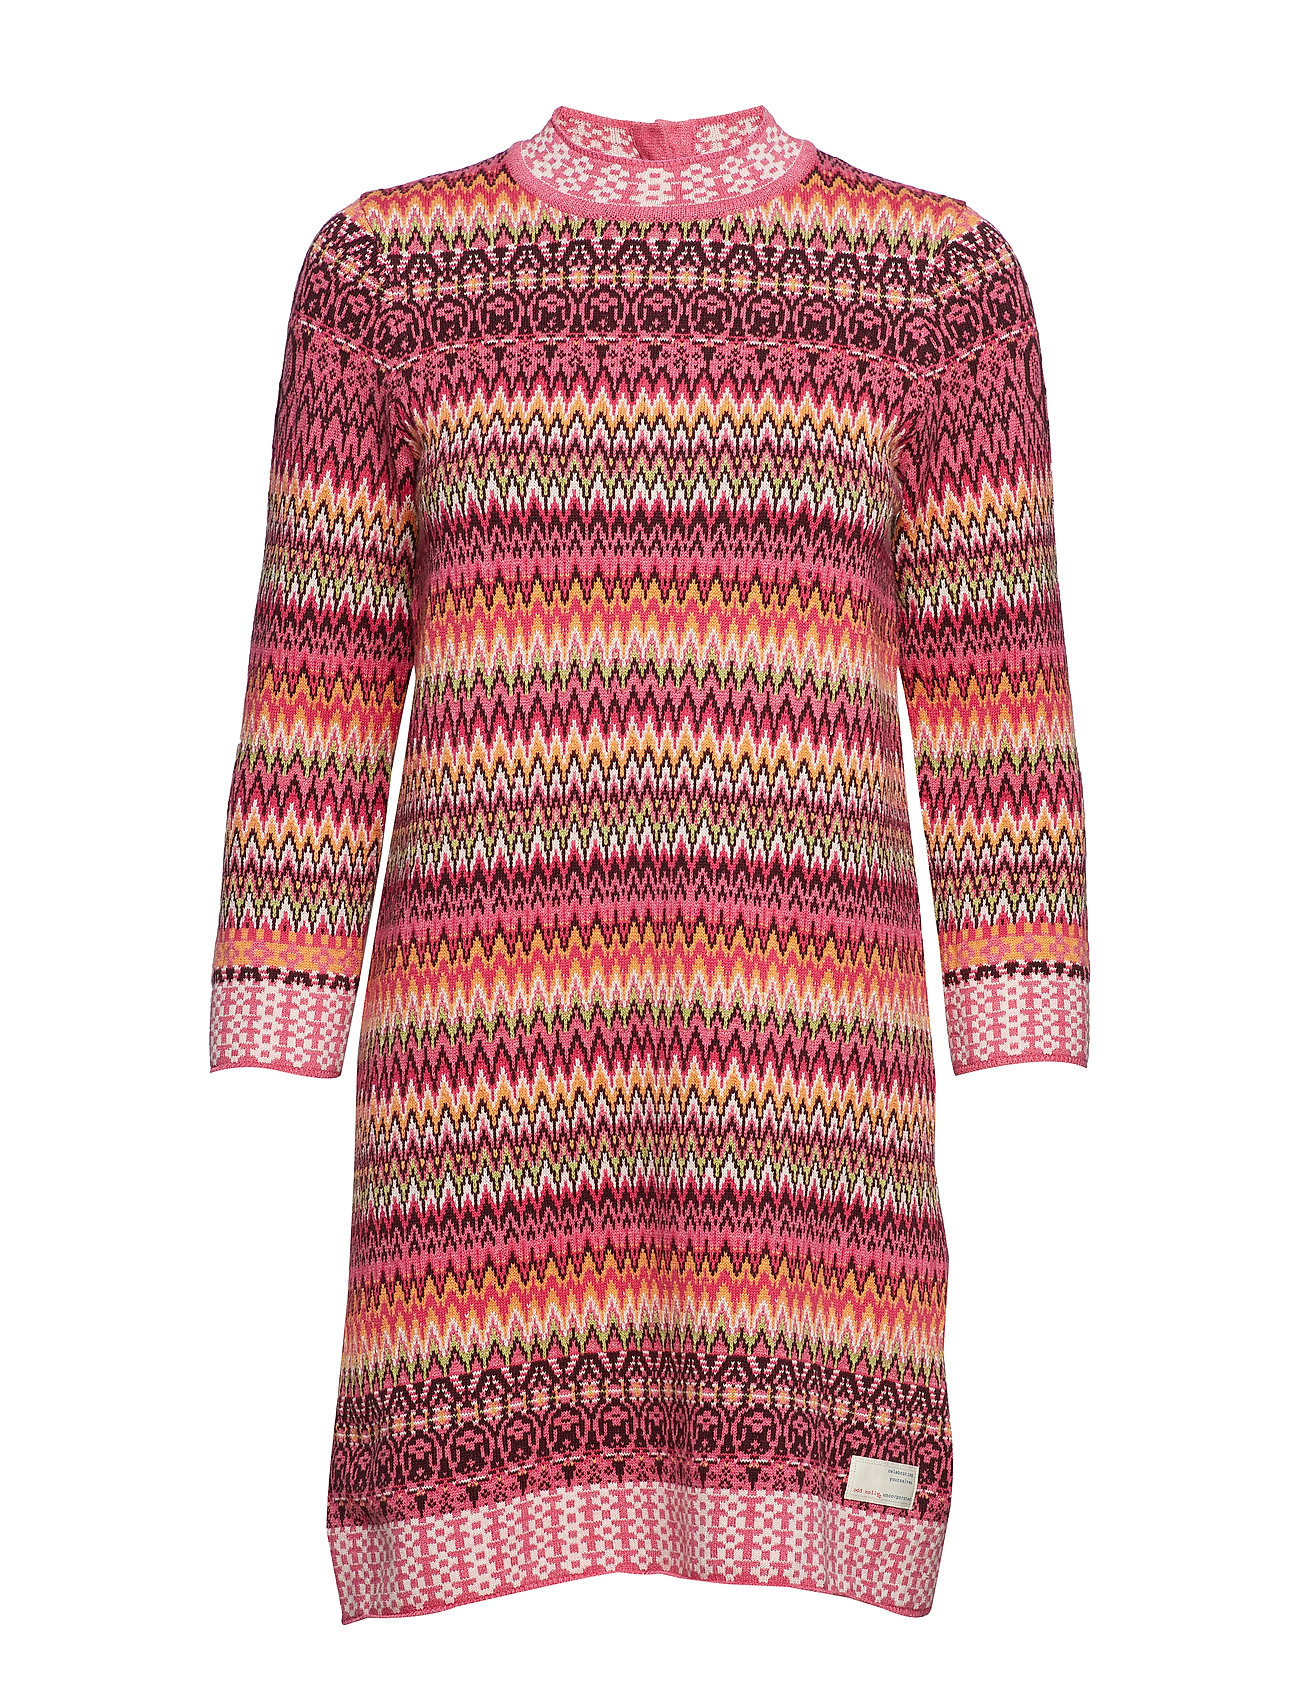 ODD MOLLY vivid vibration dress - MULTI